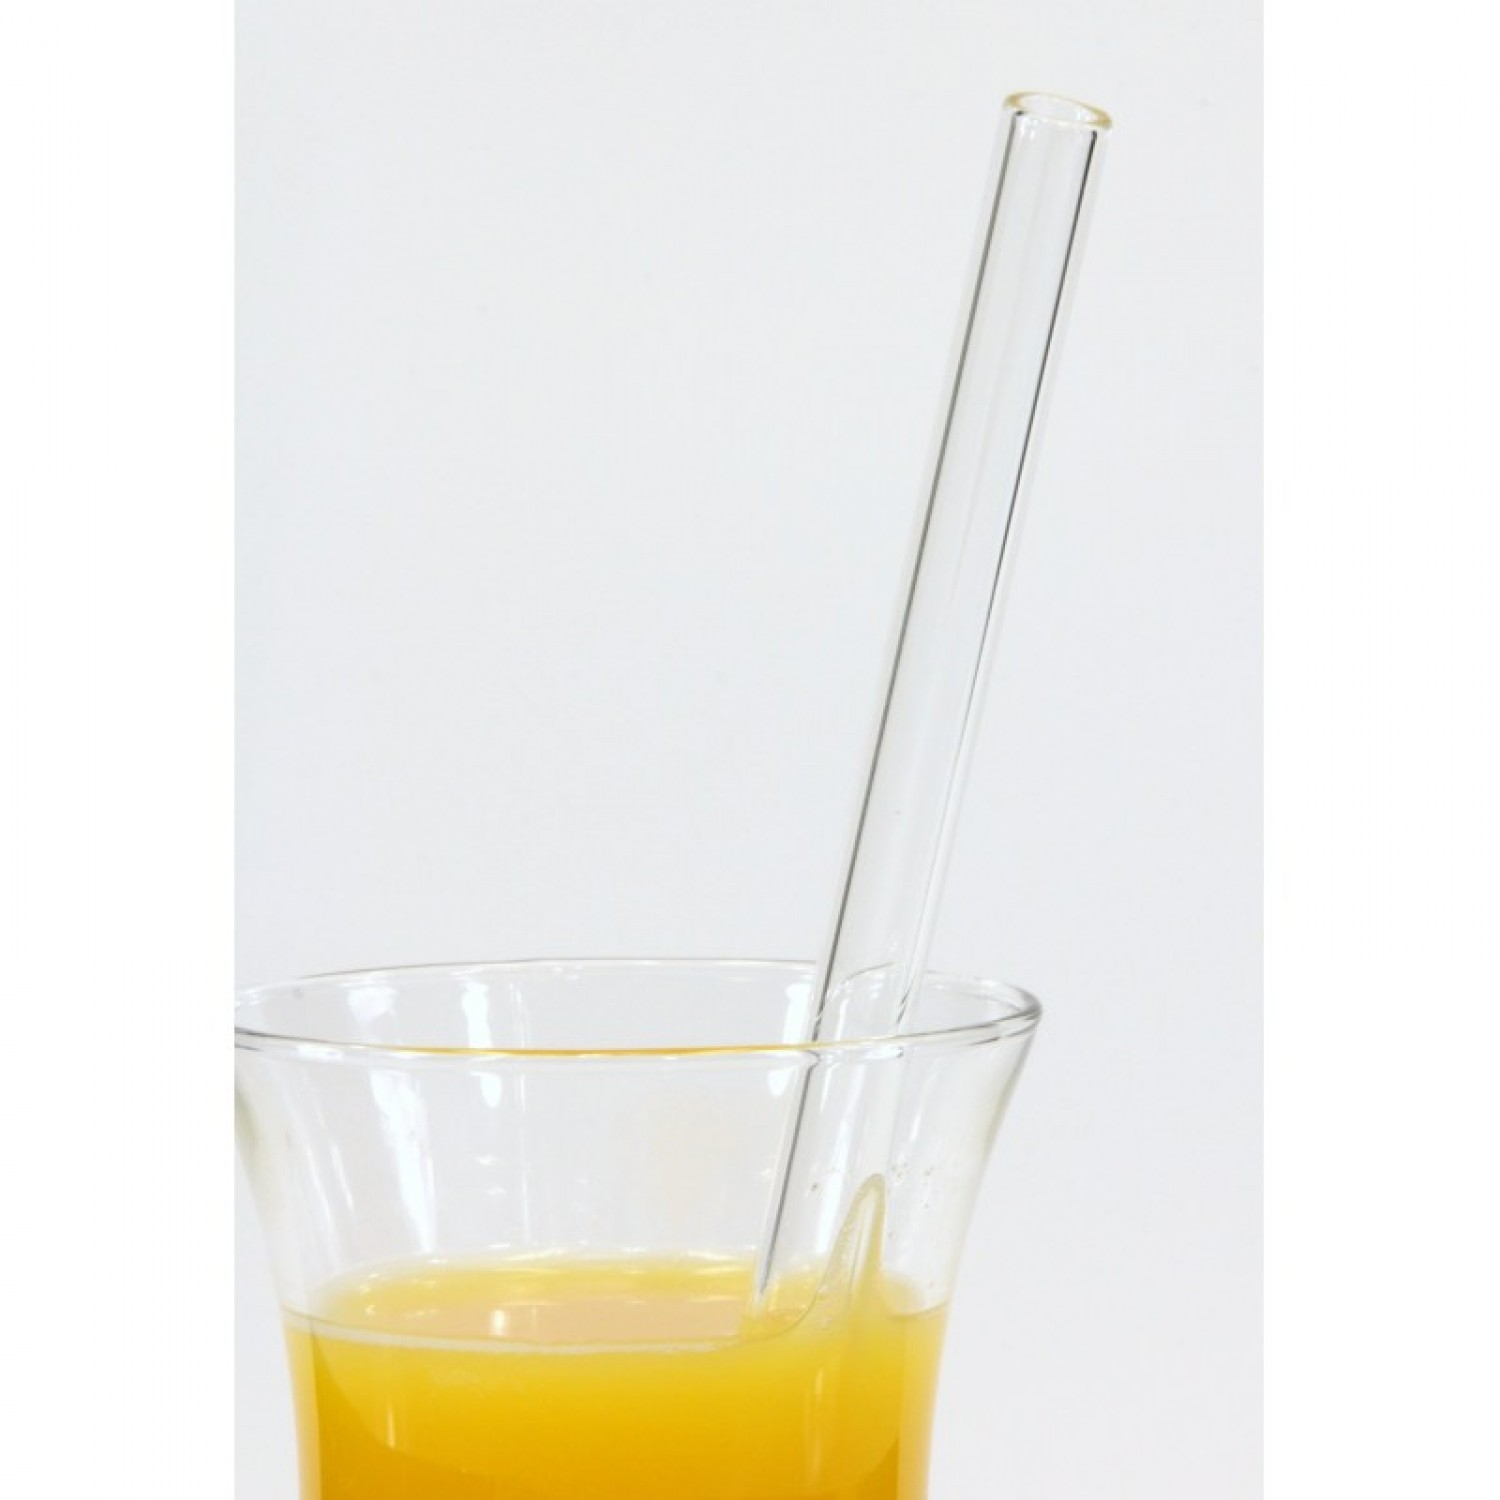 Glass drinking straw, single, straight by everstraw